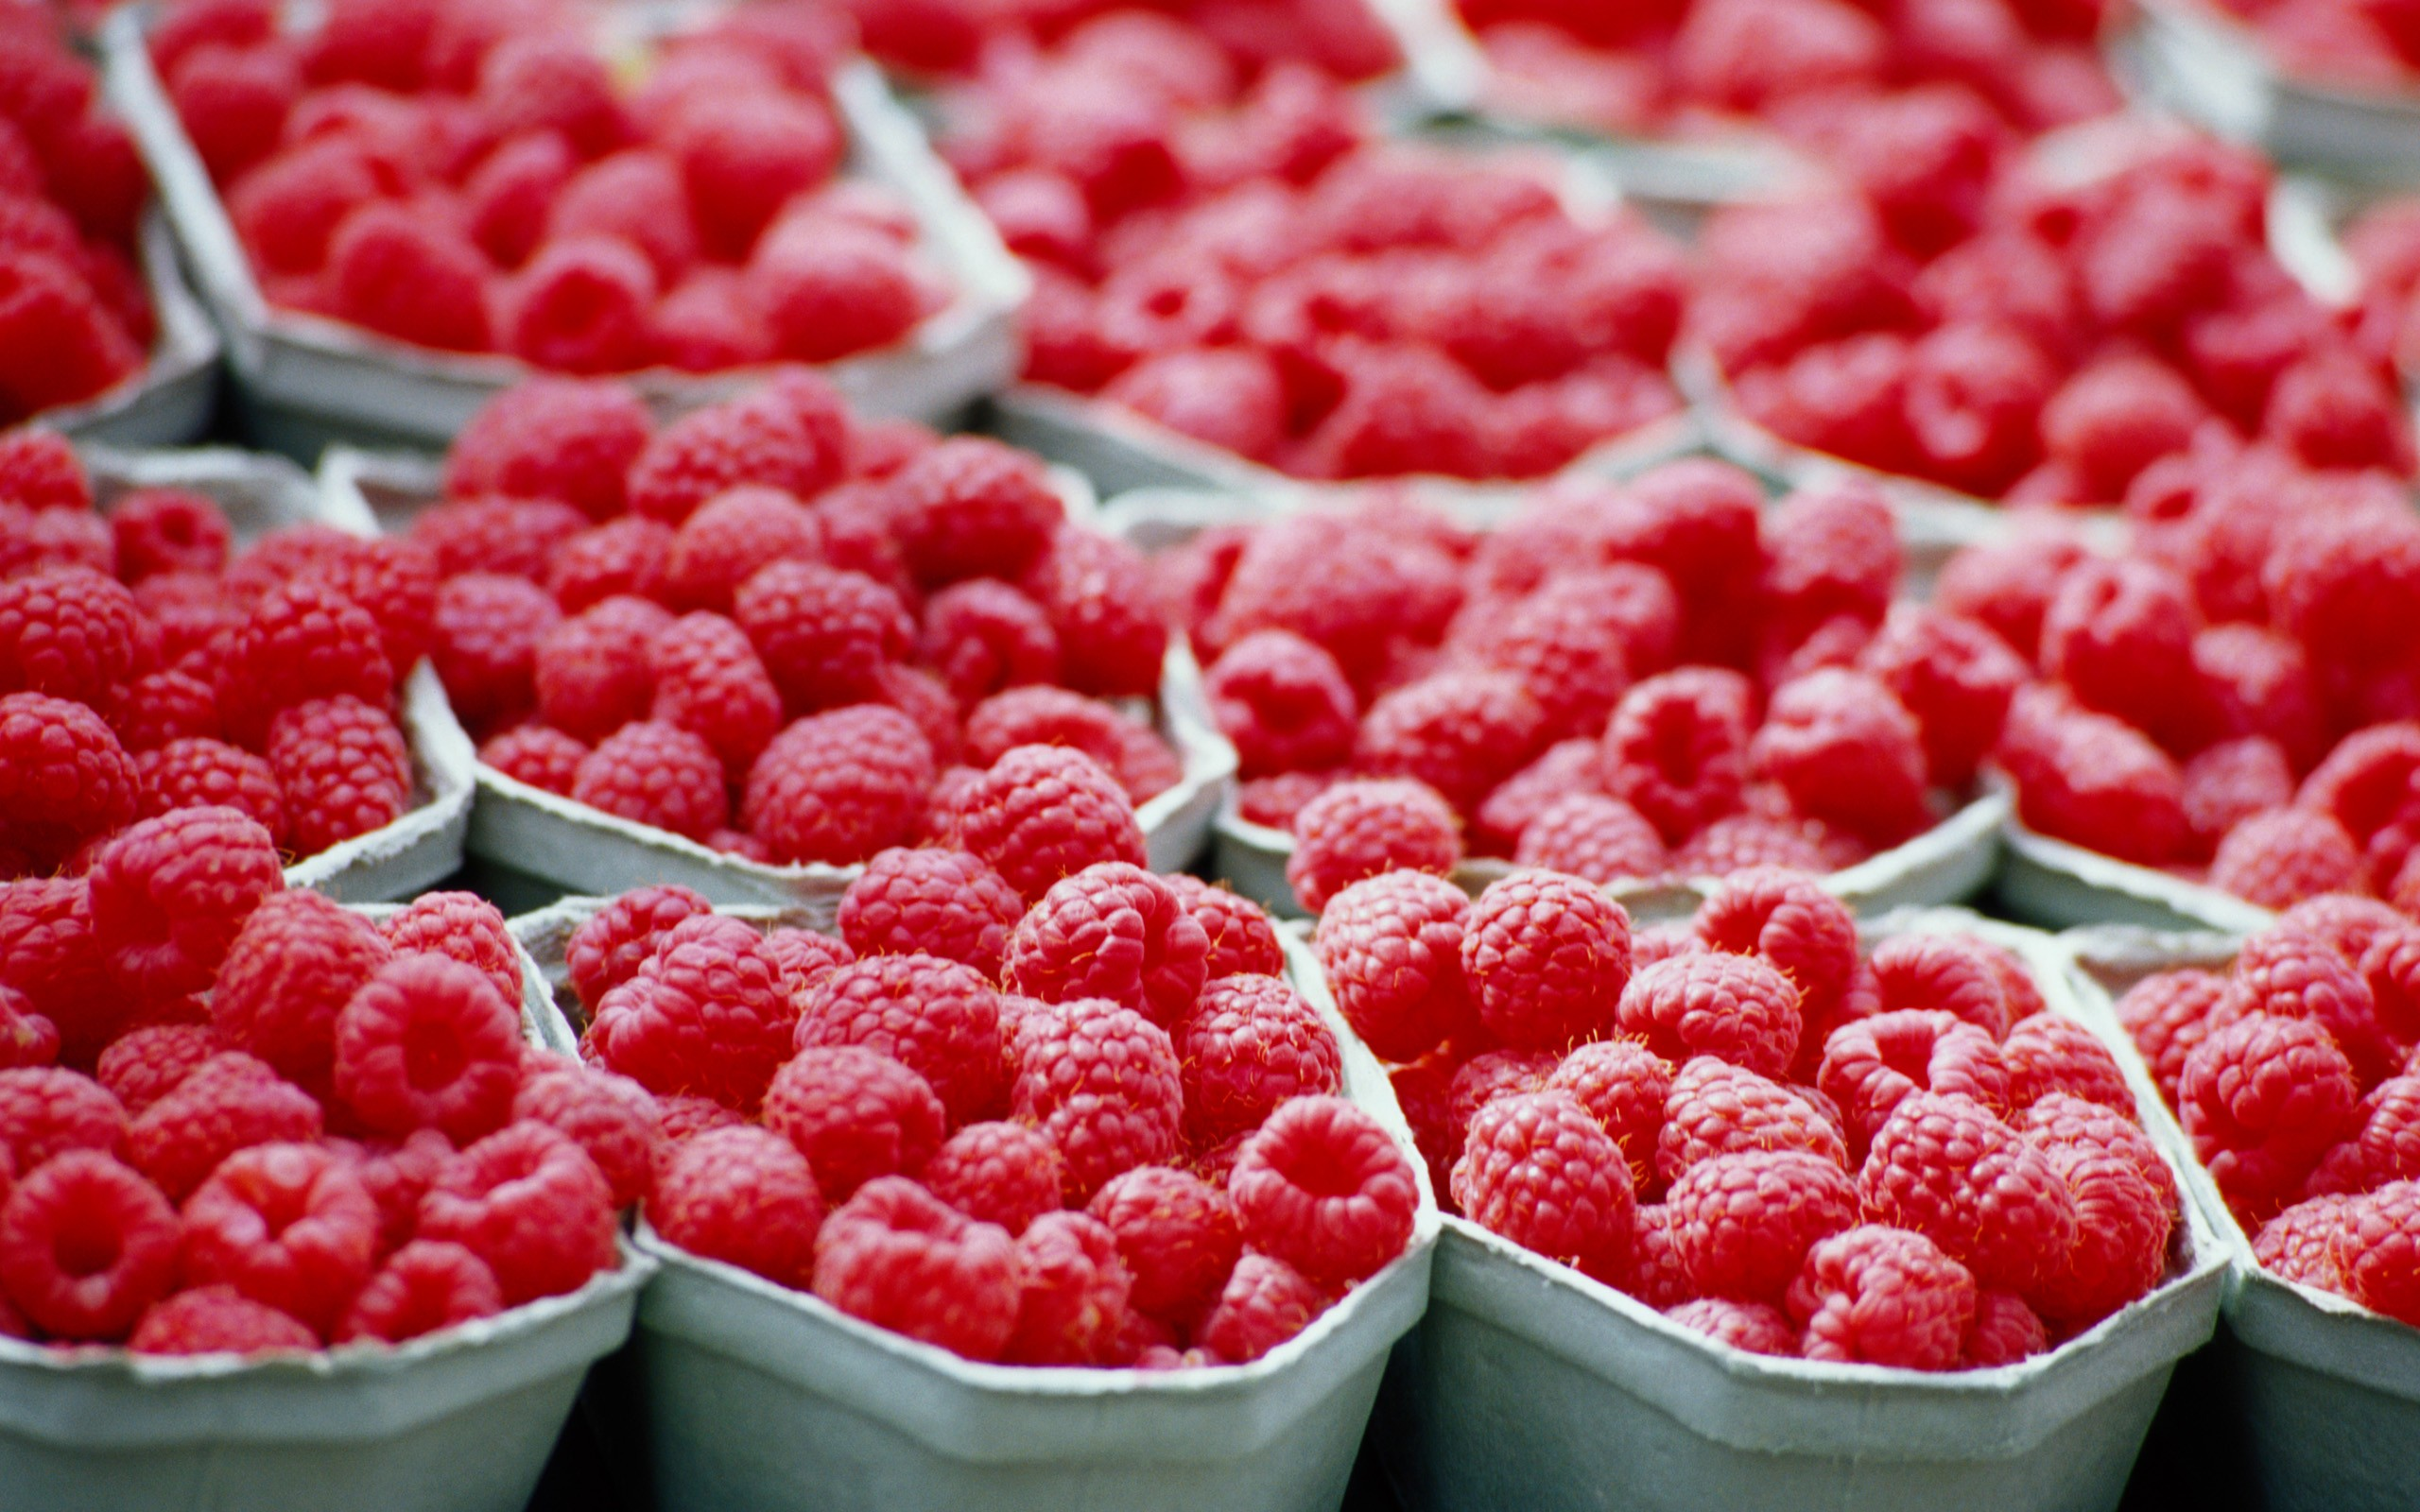 PC 2560x1600 px Raspberries Wallpaper, BsnSCB Gallery